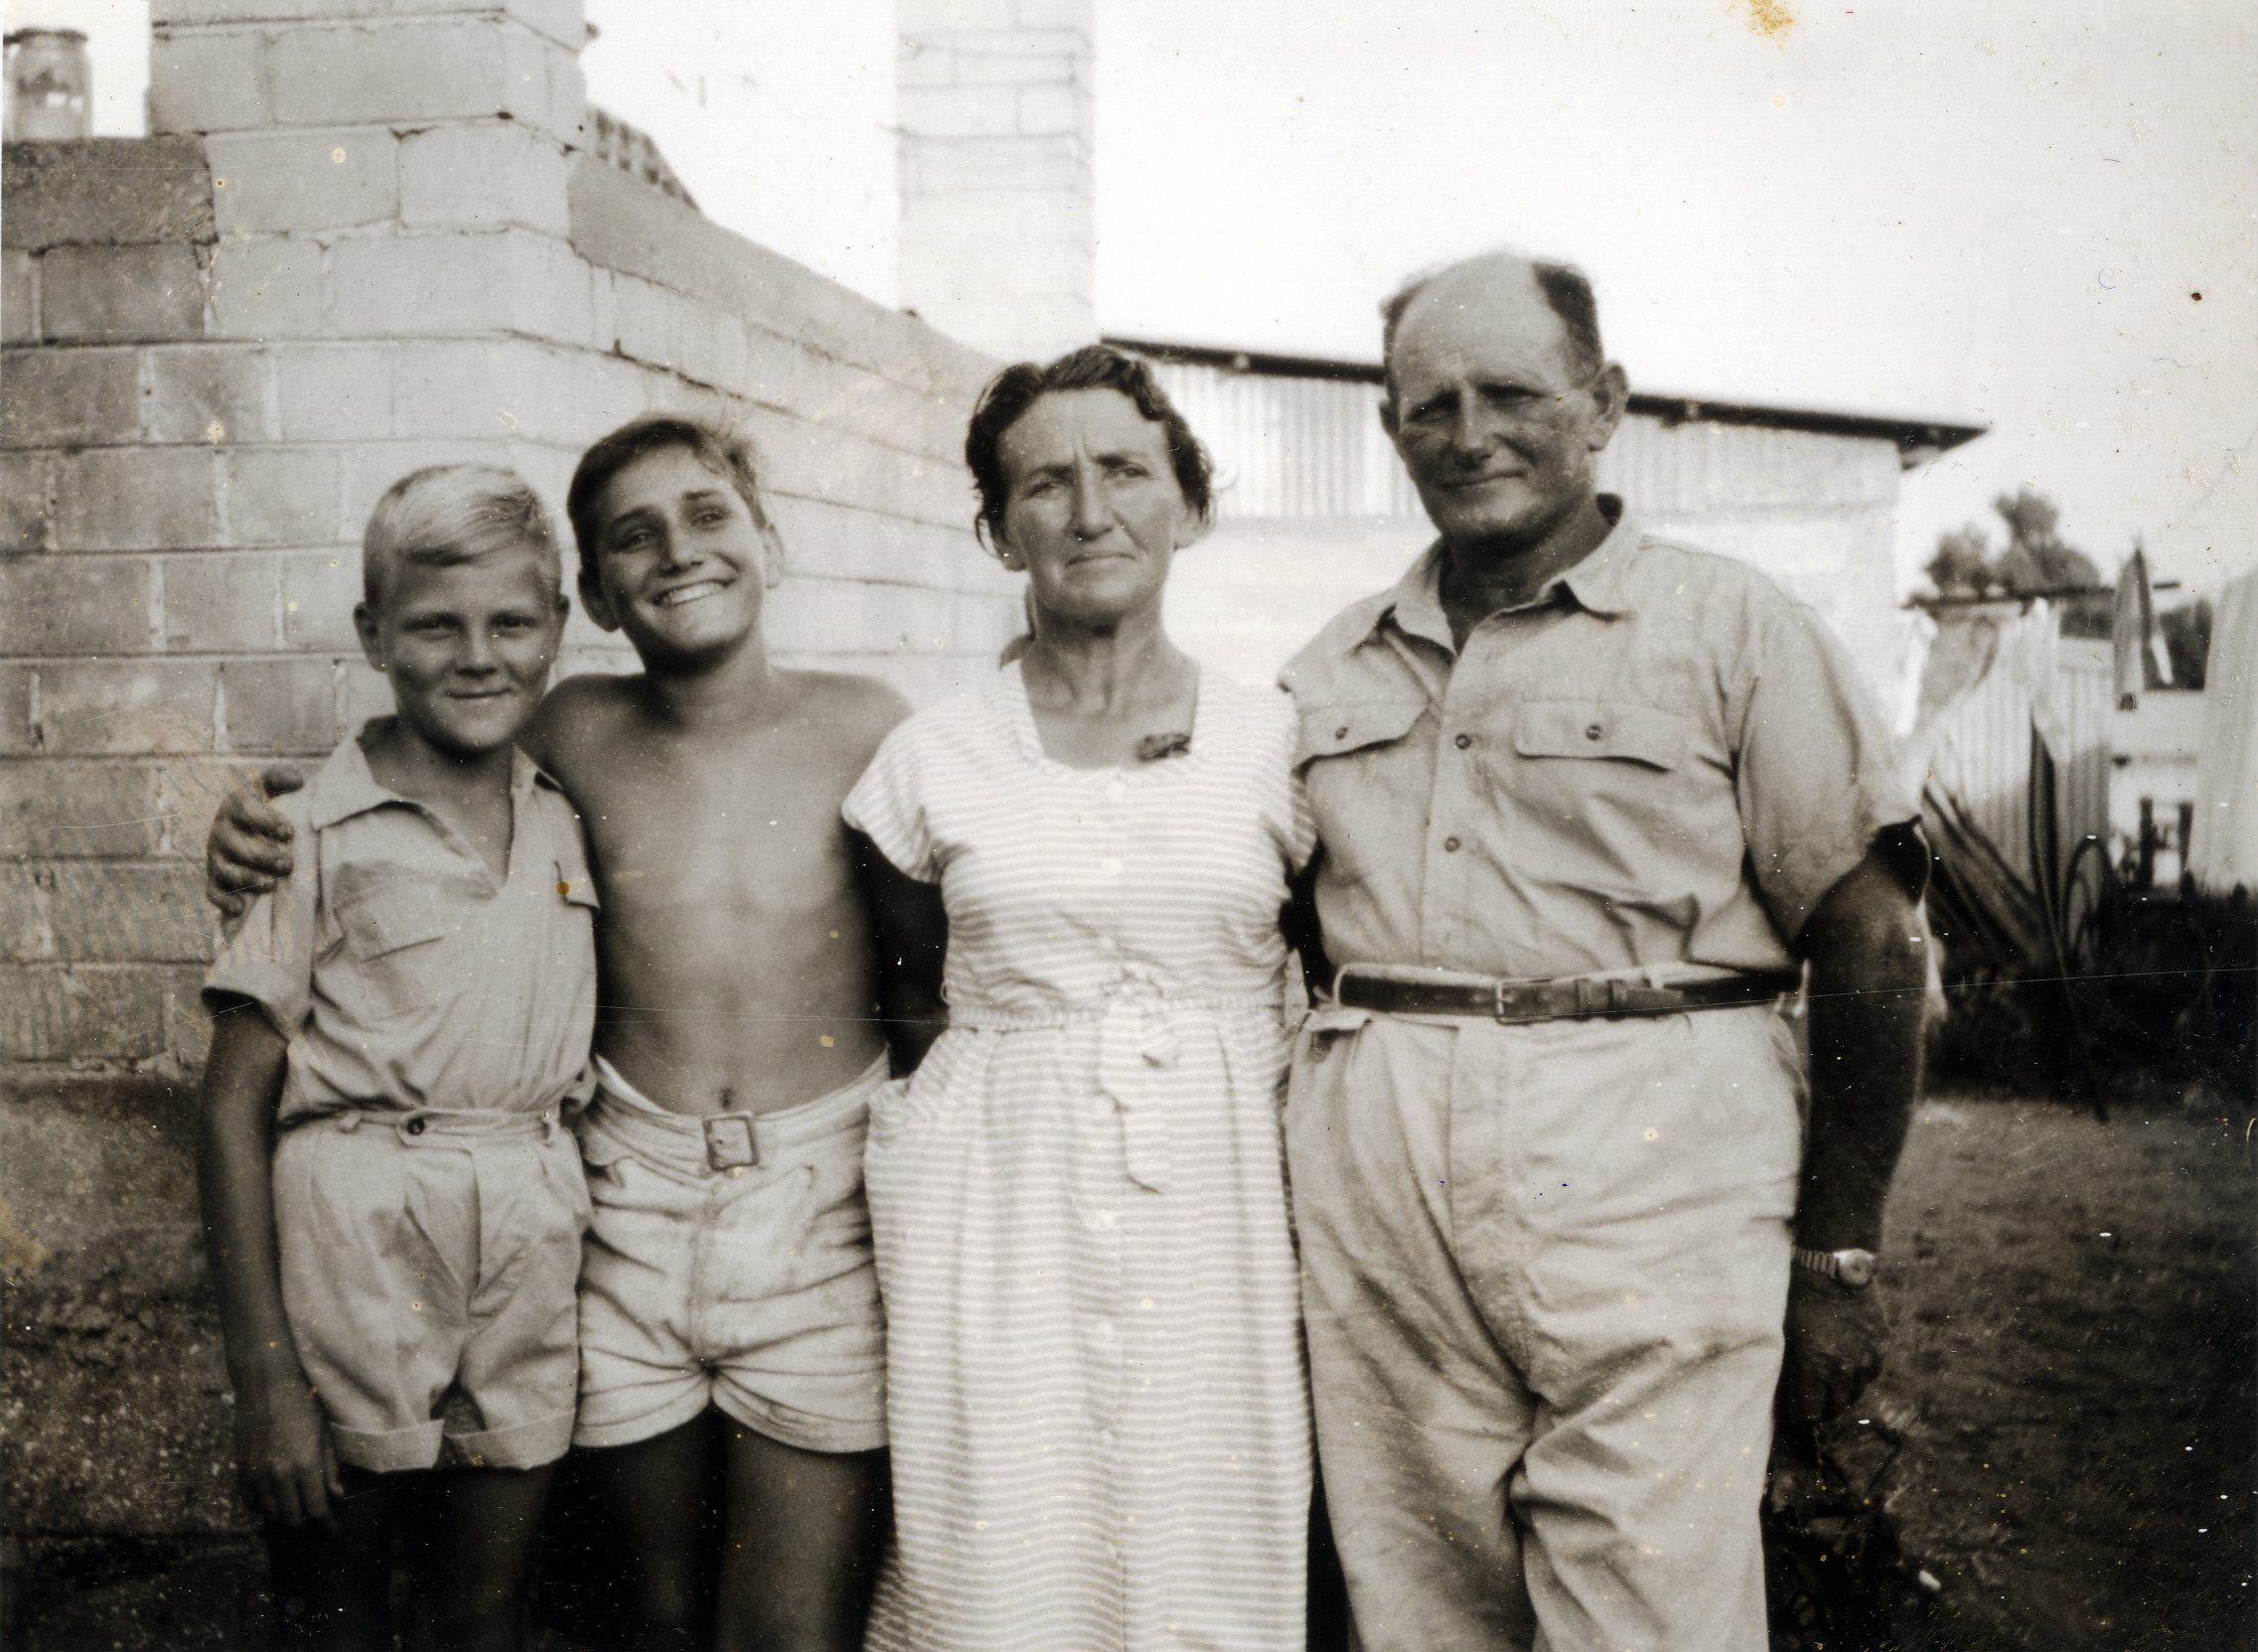 A young boy born in the Bergen-Belsen displaced persons camp, with his adoptive family in Israel.  PIctured (left to right) are Izak Szewelewicz with Giora, Salin, and Michel Bernay.